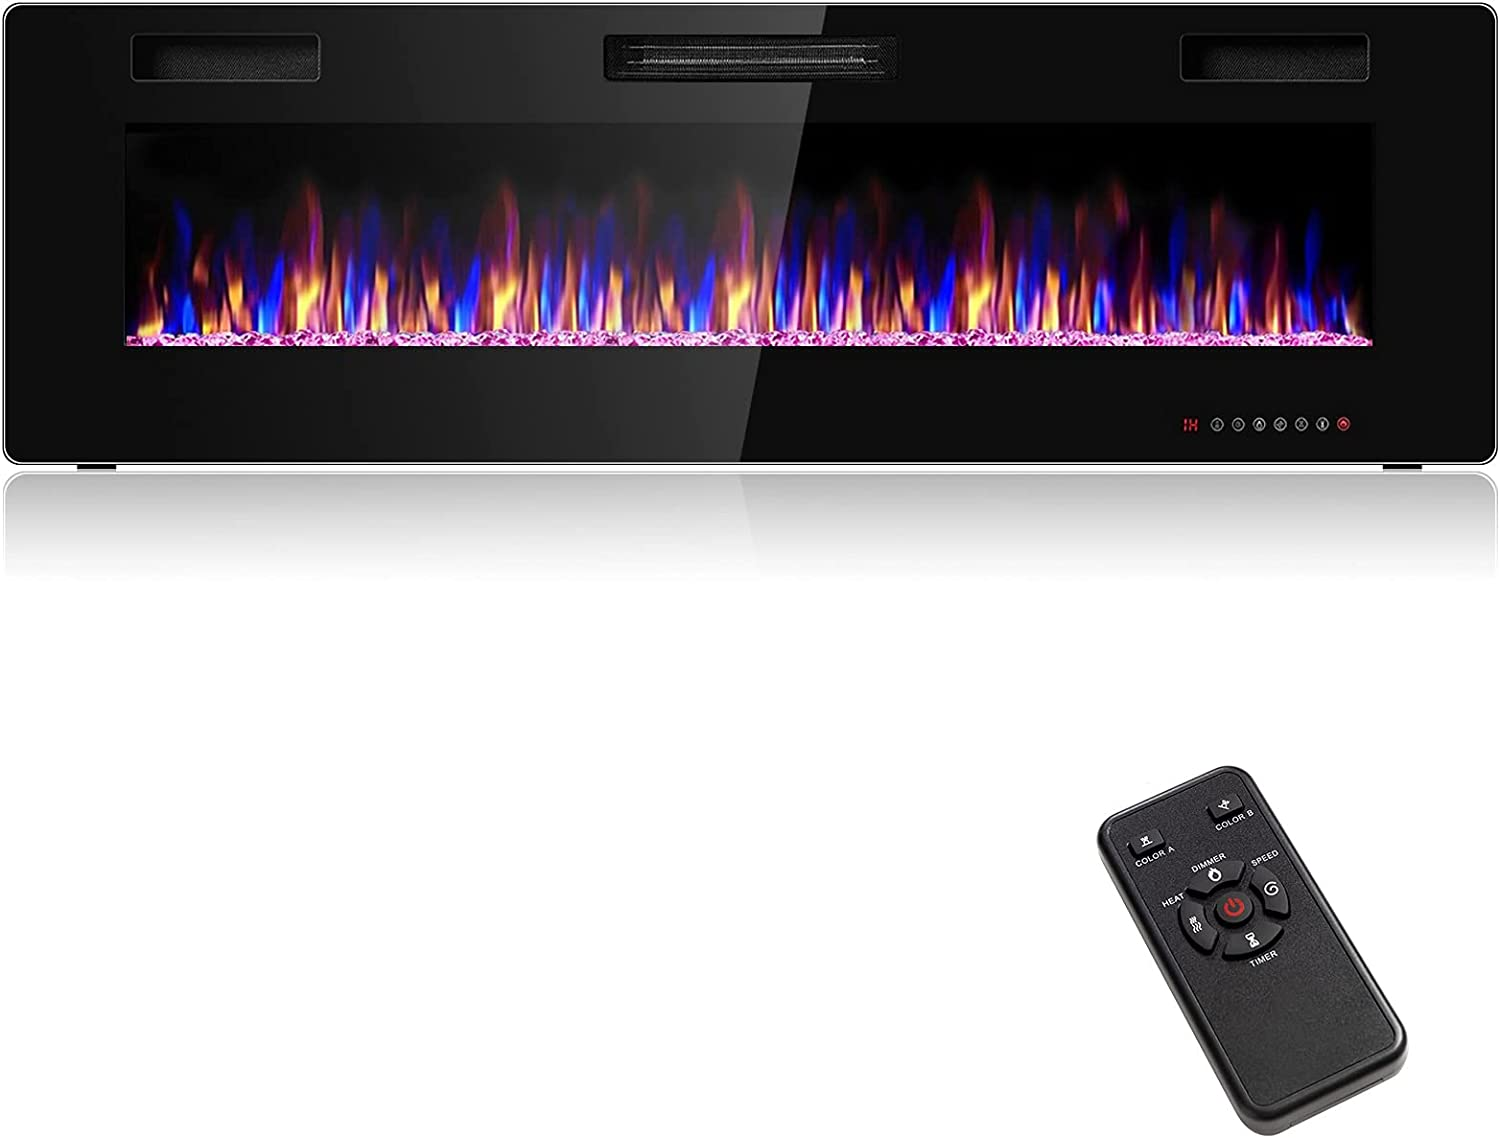 Rainfally 60 Inches Max 89% OFF Electric Mounted Wall w Boston Mall Fireplace